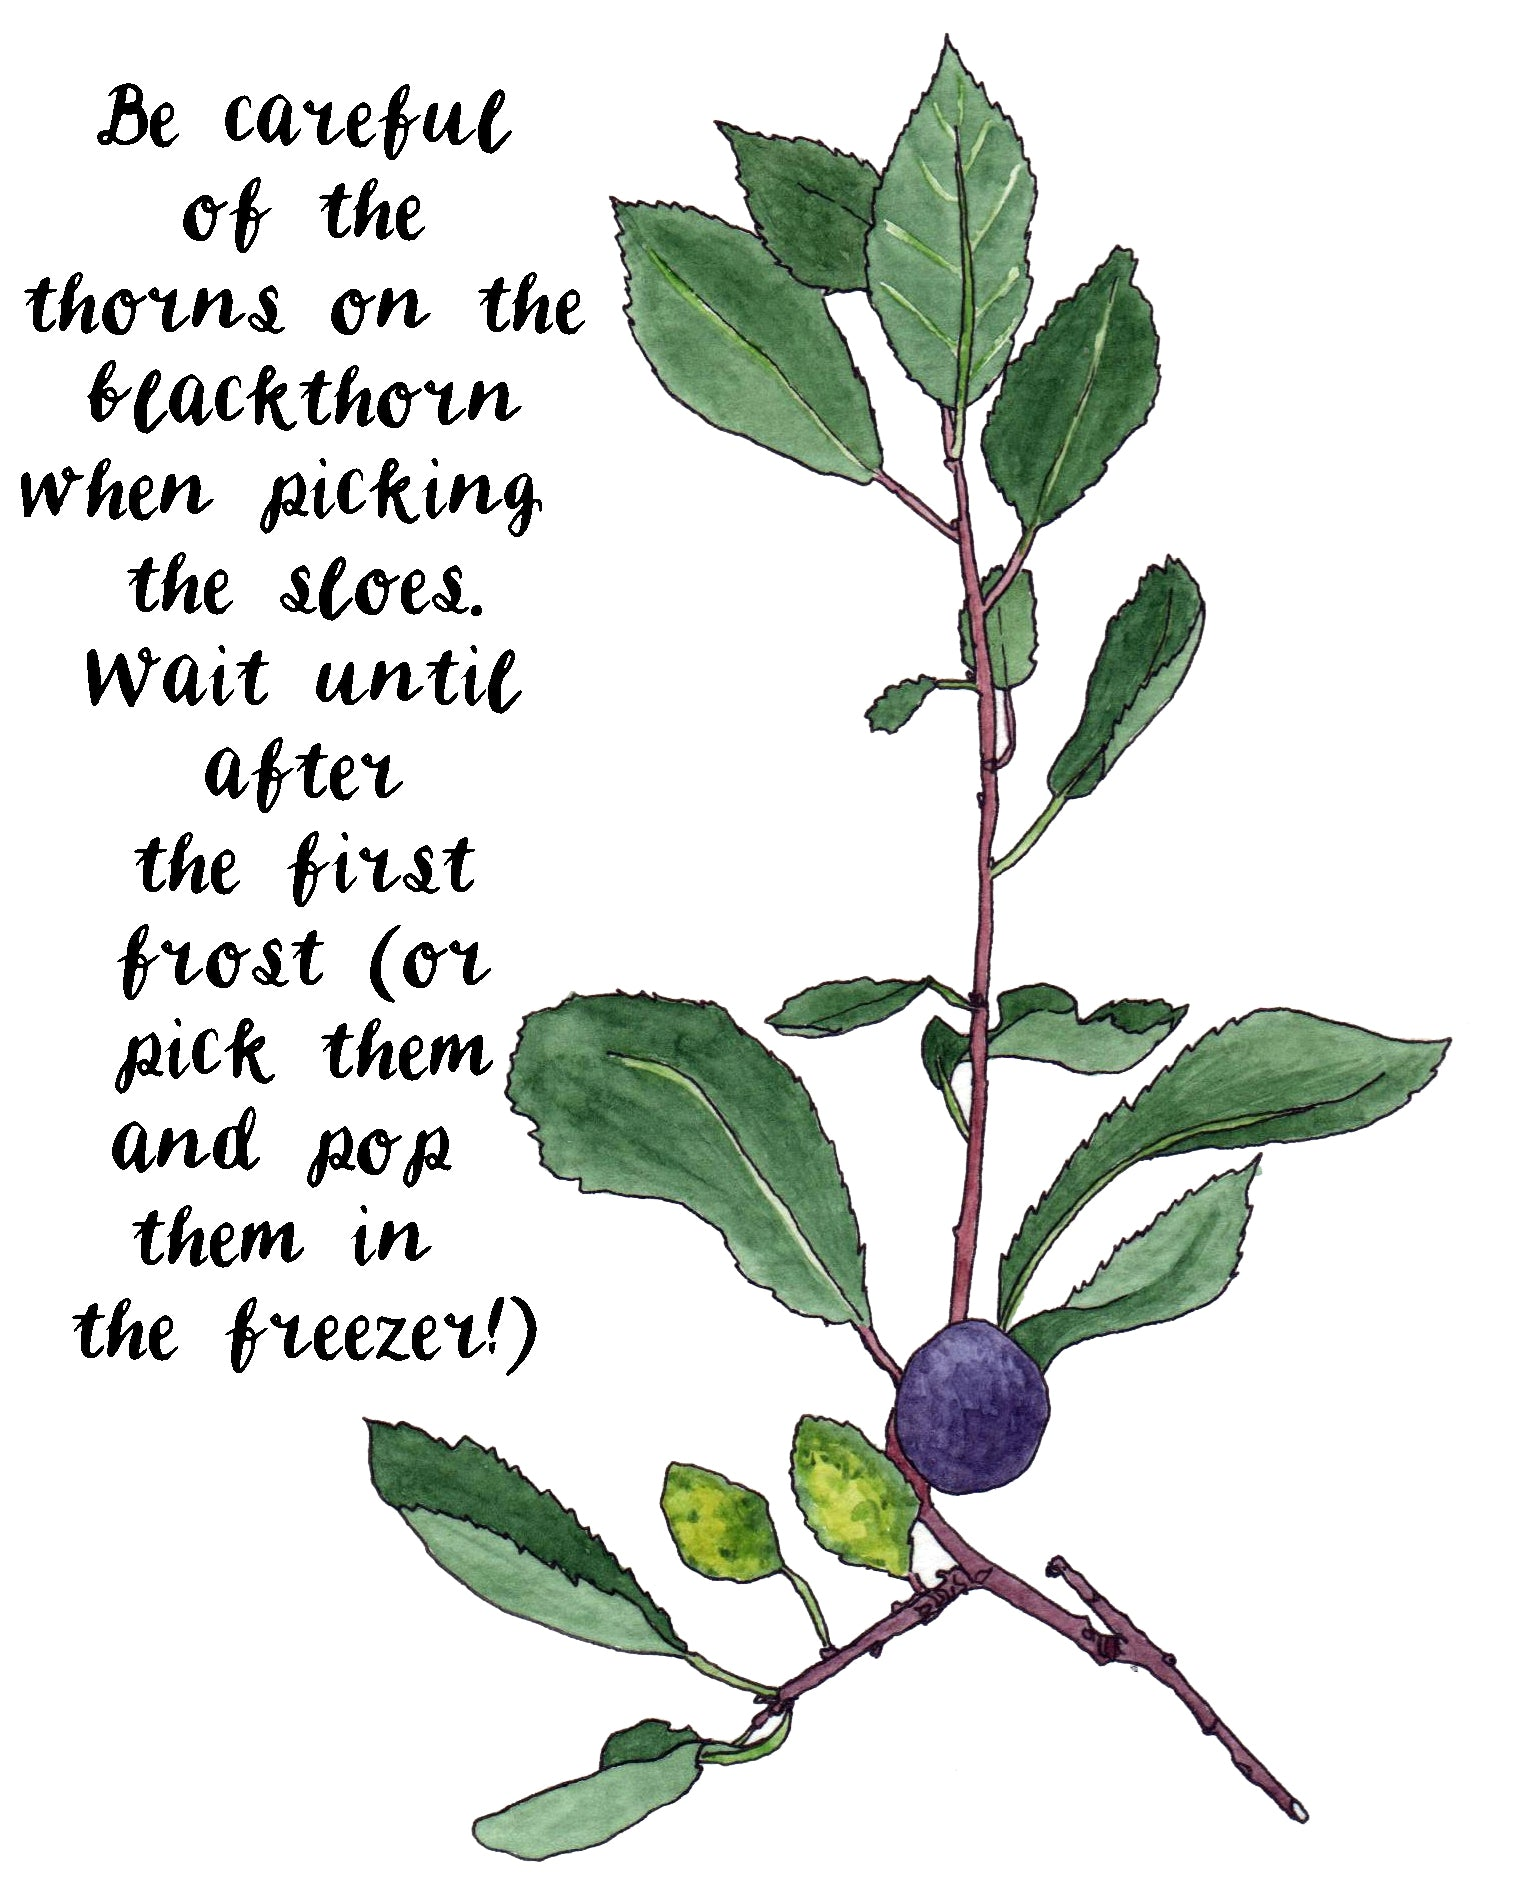 Blackthorn has nasty thorns but also sloes by Alice Draws The Line